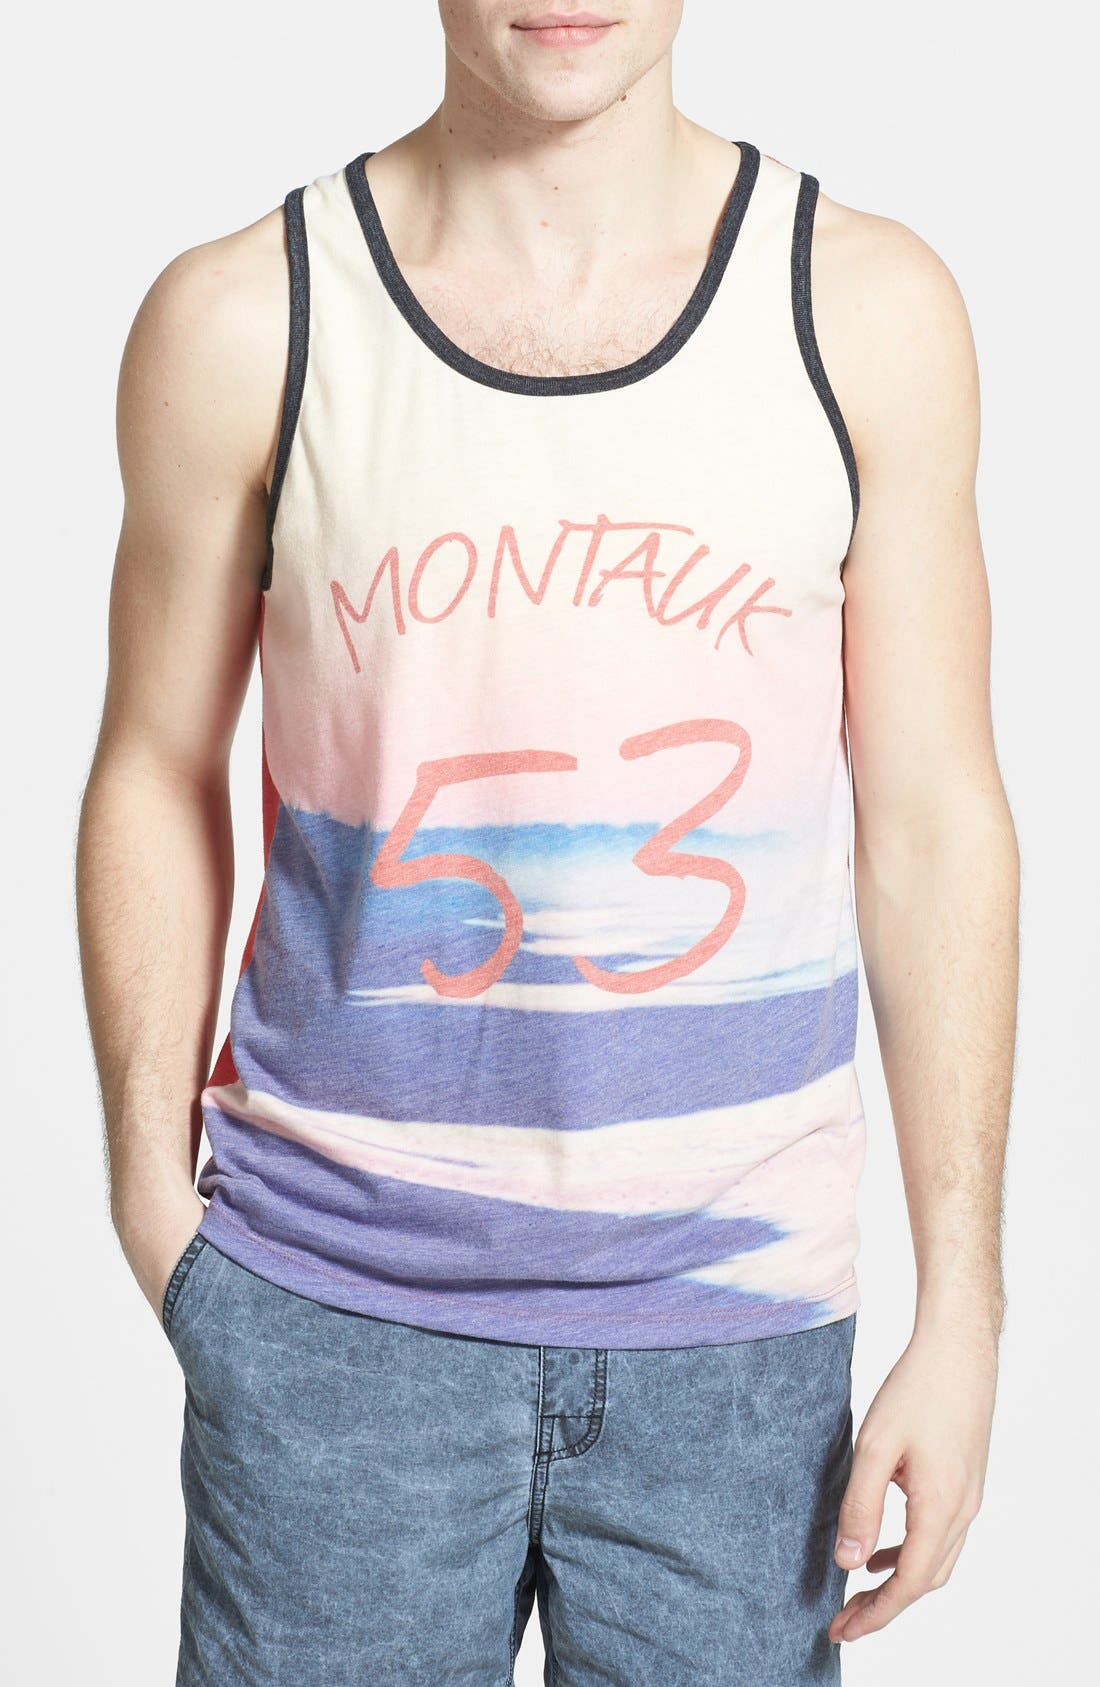 Main Image - Threads For Thought 'Montauk' Graphic Tank Top